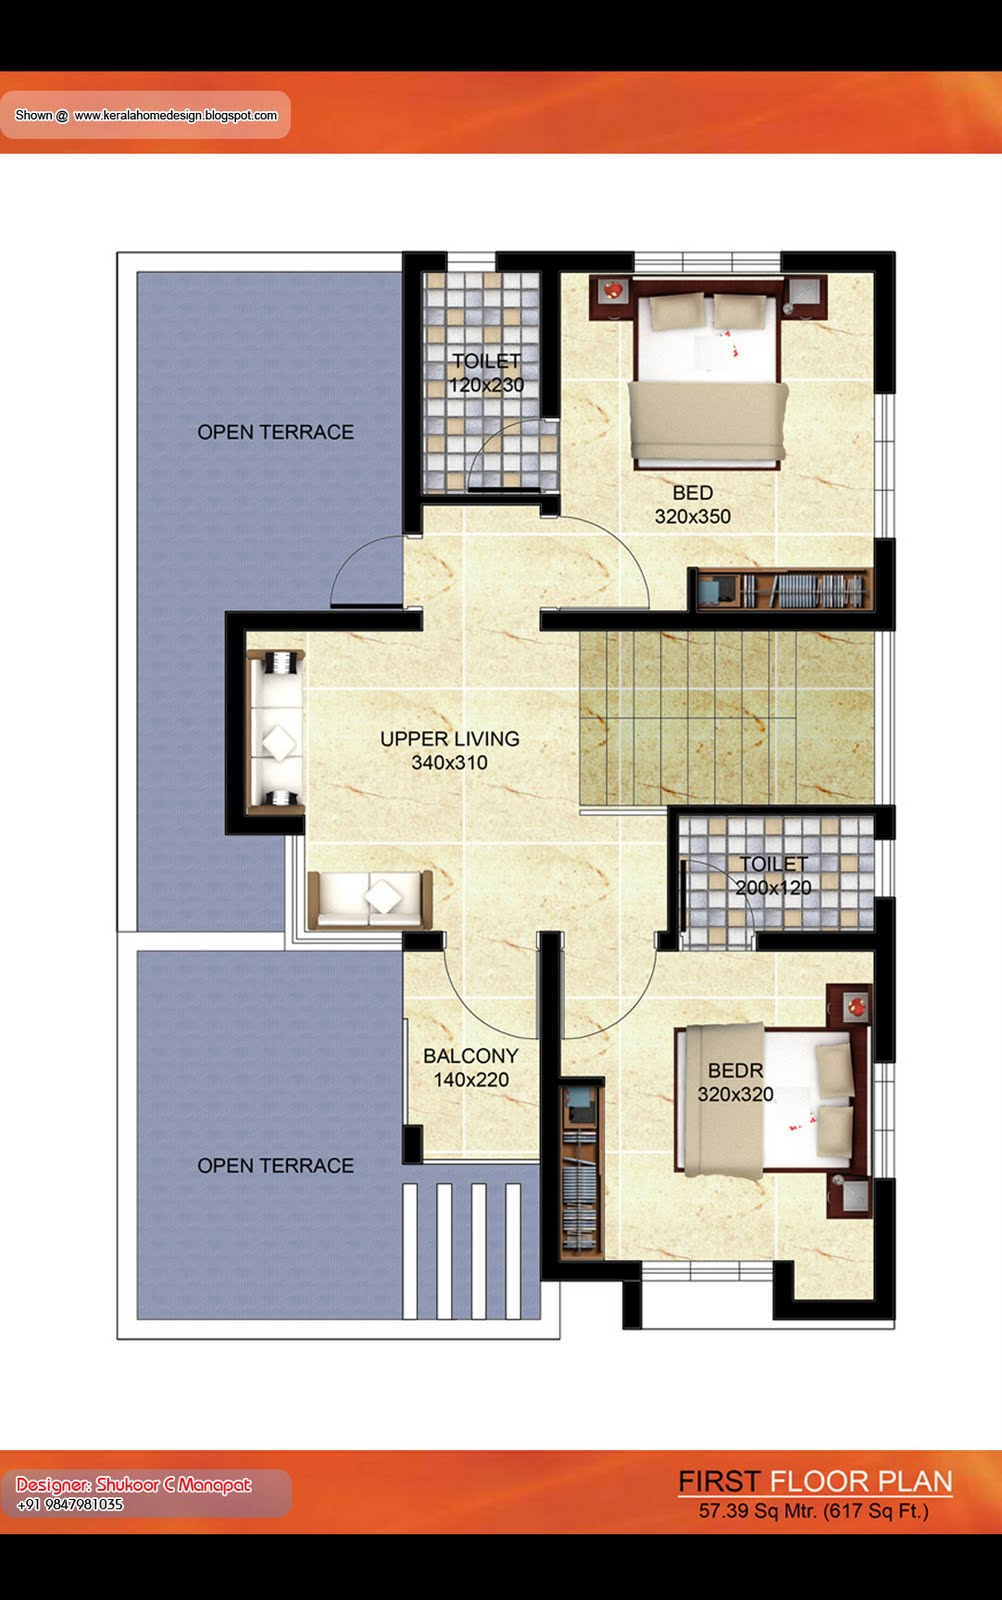 Kerala Villa Plan - 1500 Sq. Ft | Architecture house plans